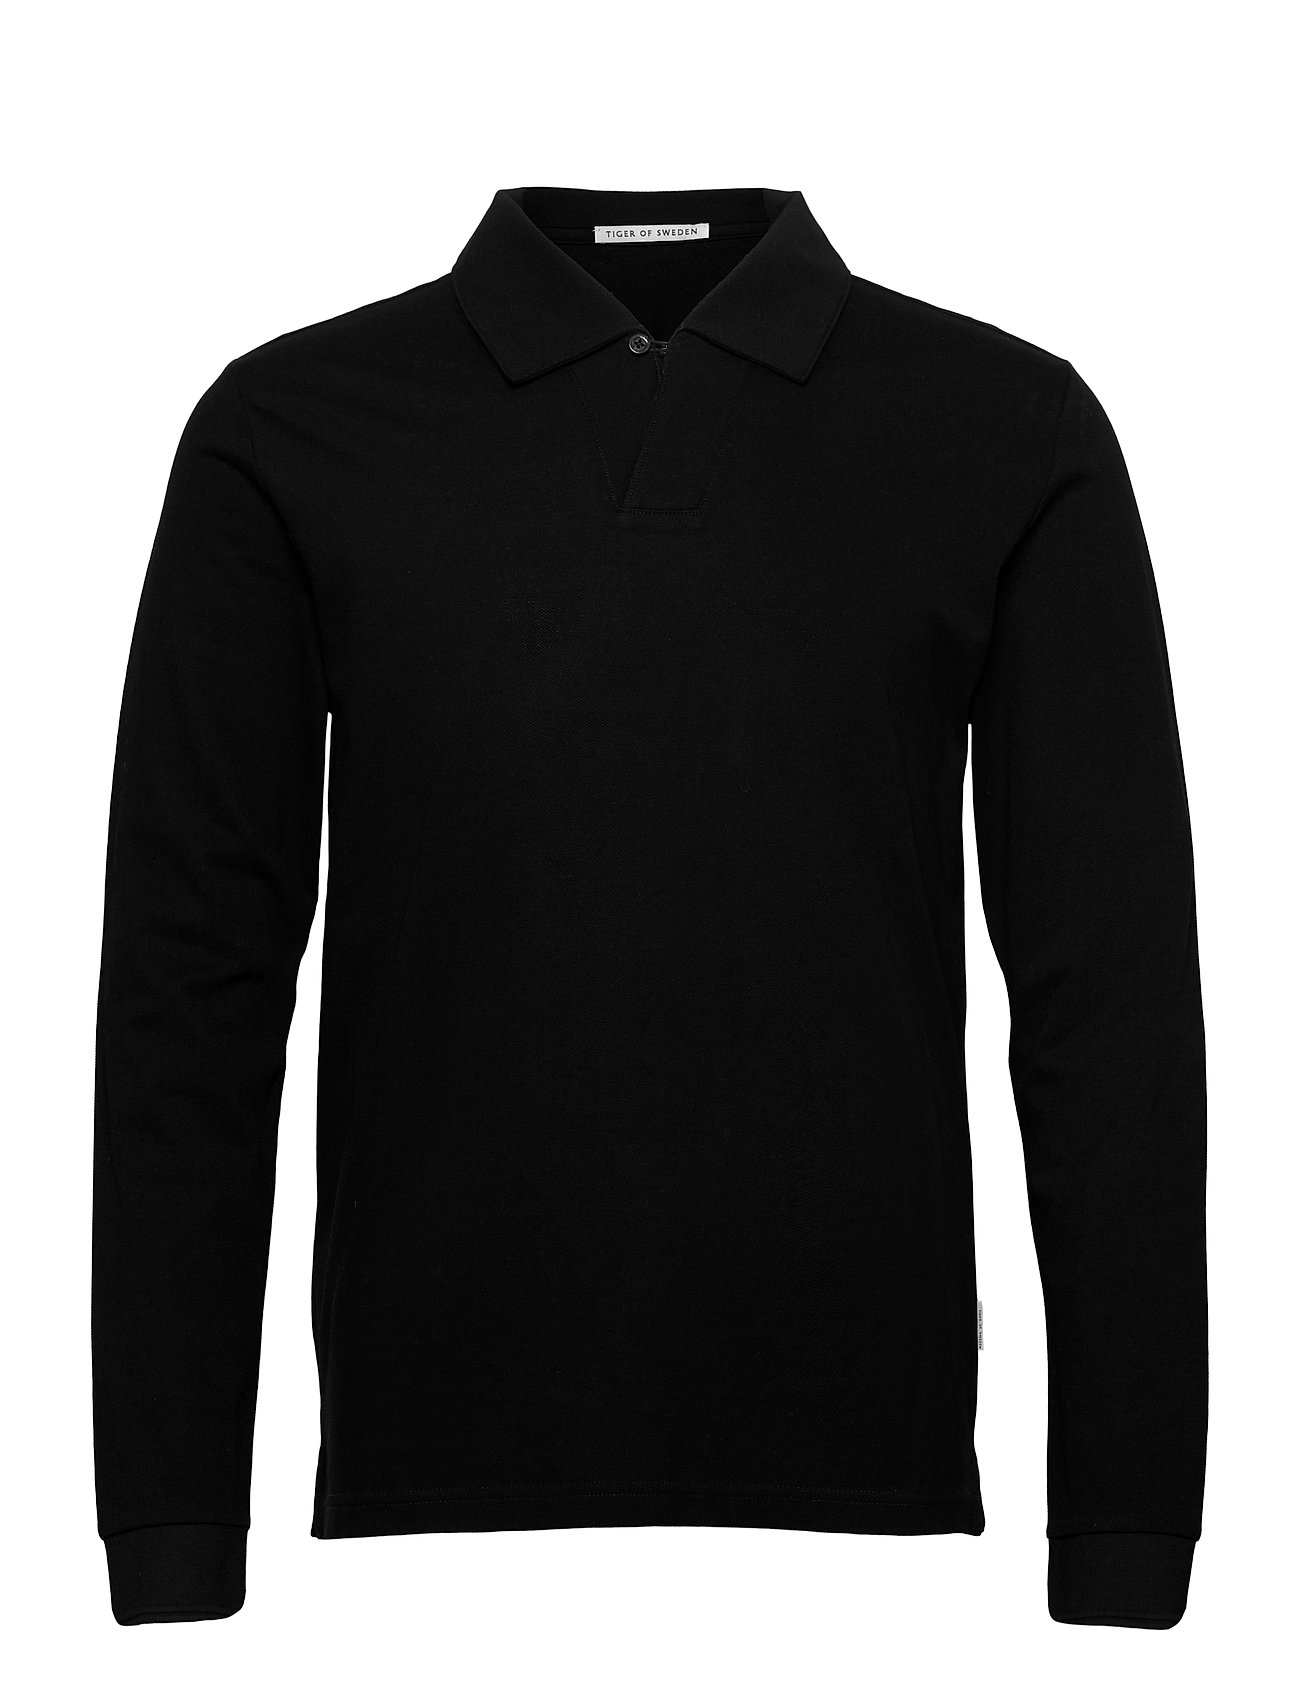 Image of Aderico Ls Polos Long-sleeved Sort Tiger Of Sweden (3445900373)